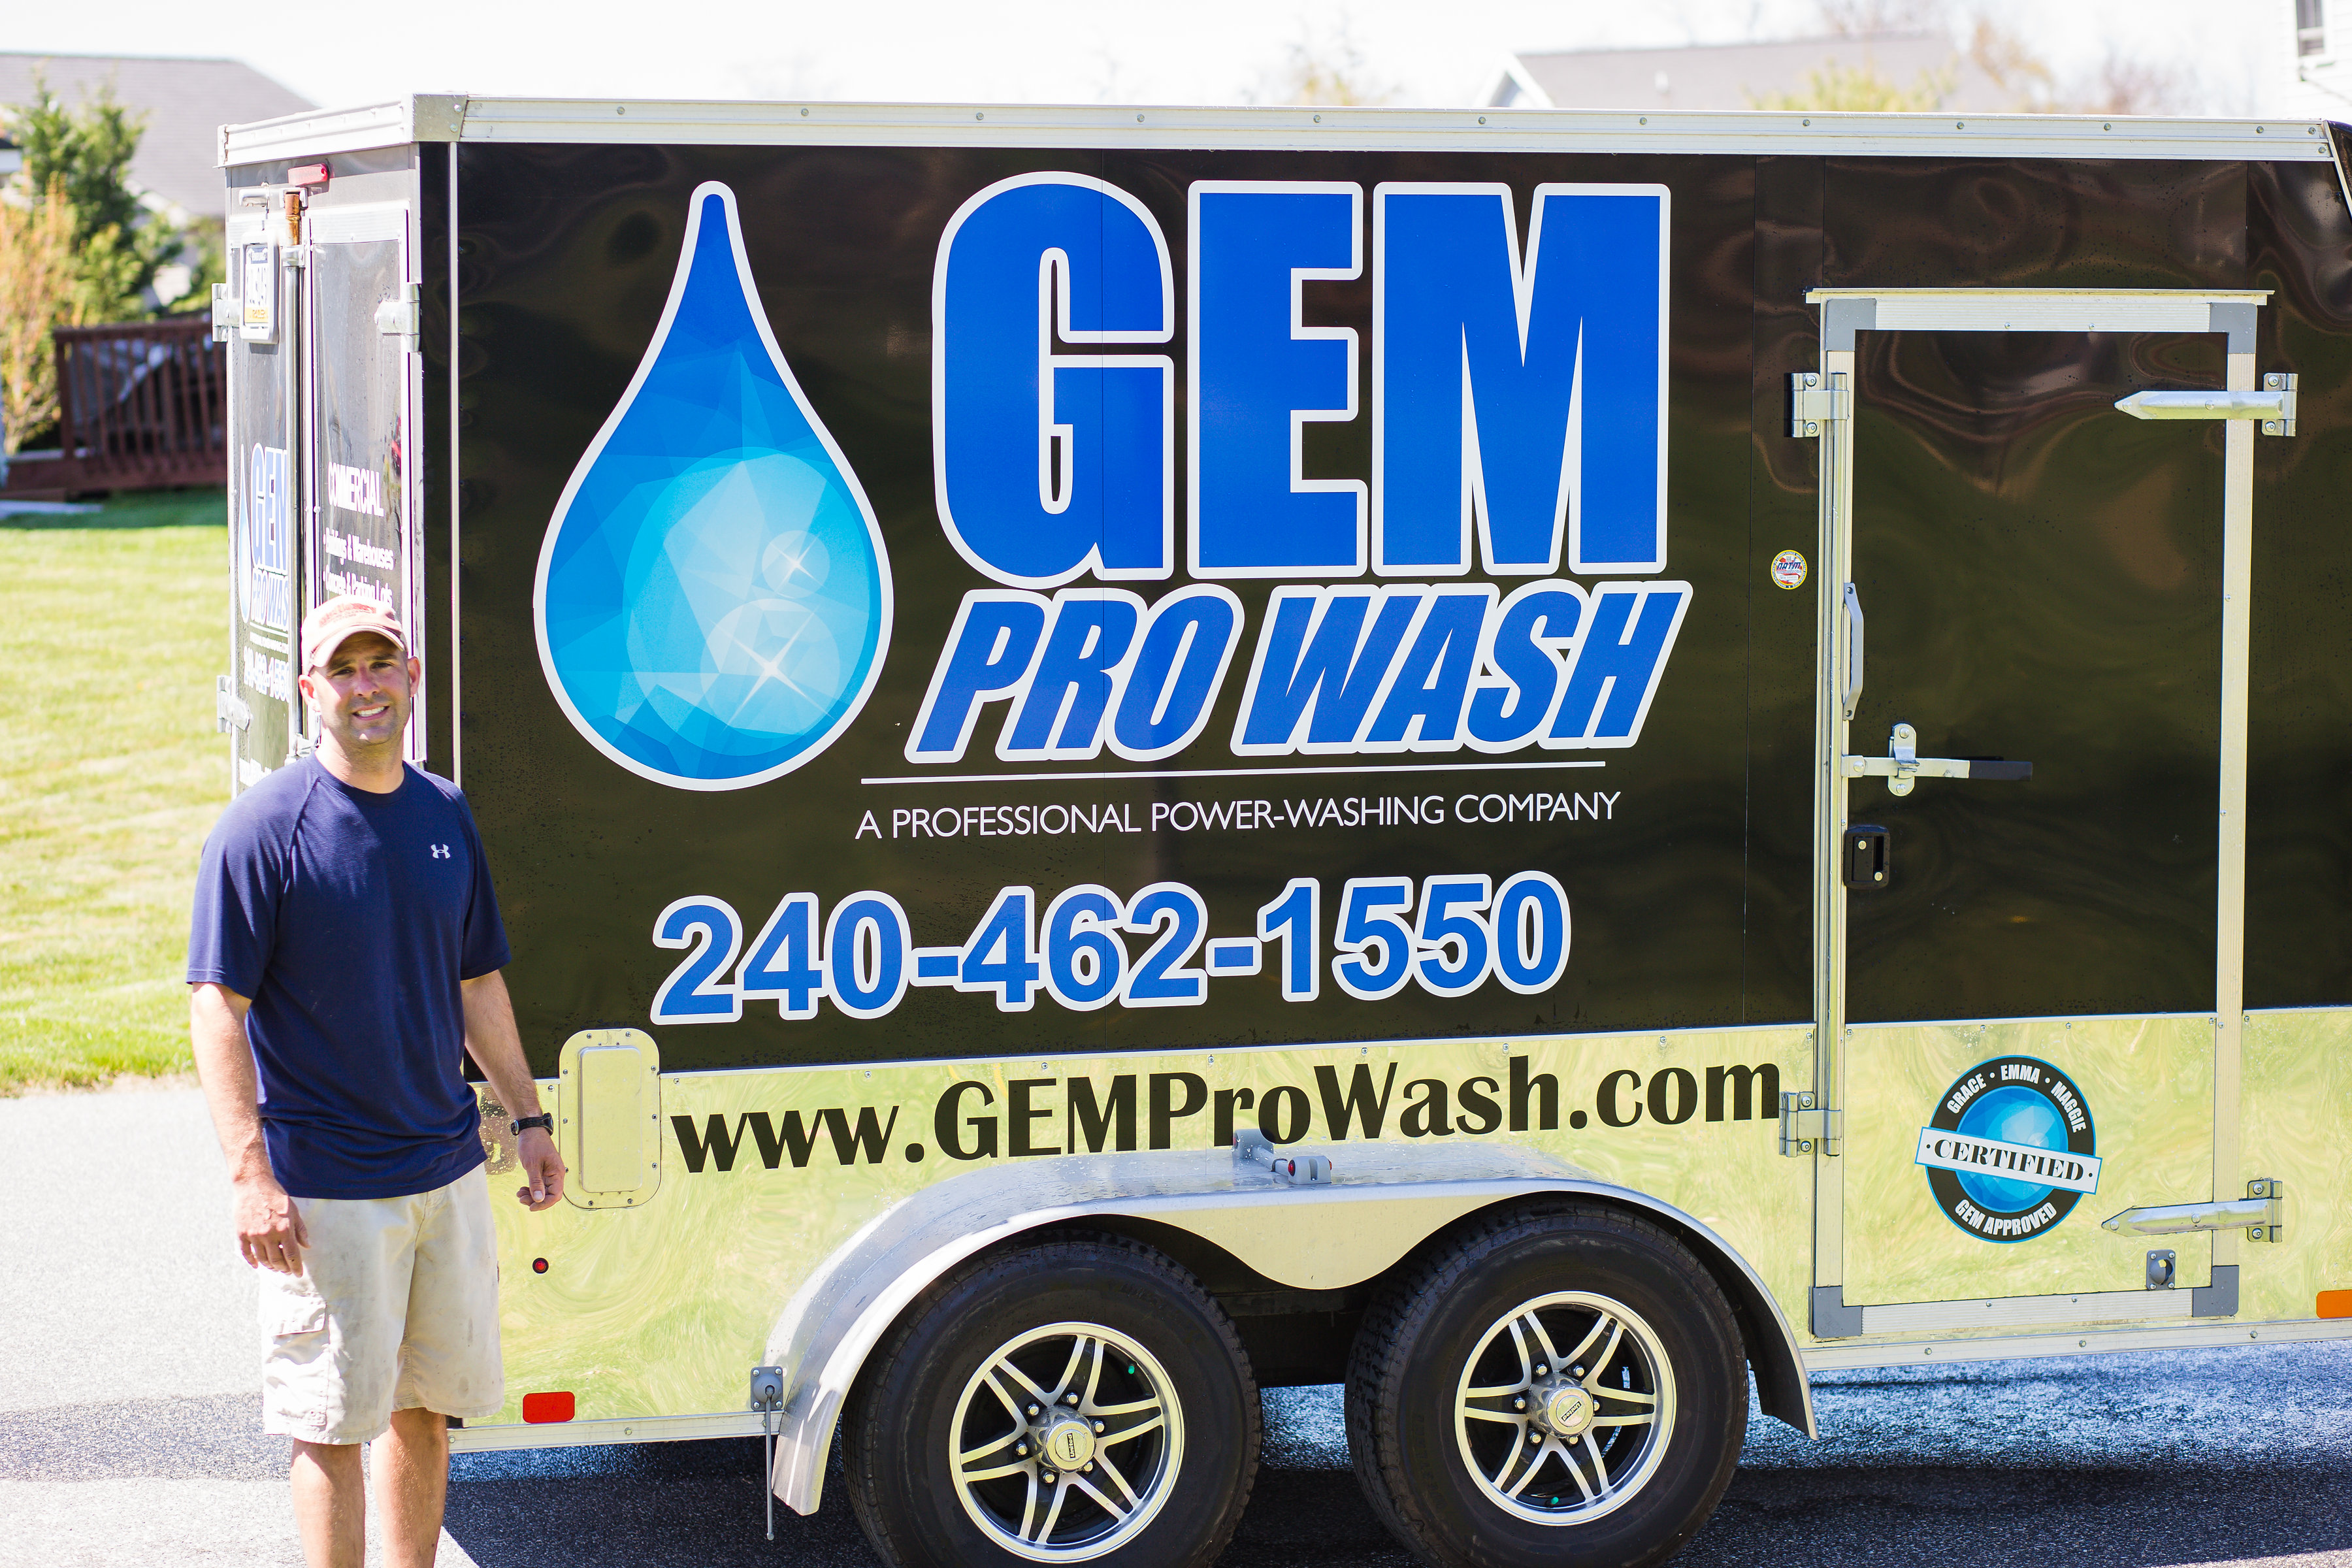 Gem Pro Wash | Soft Wash Roof Contractor in Fayetteville PA